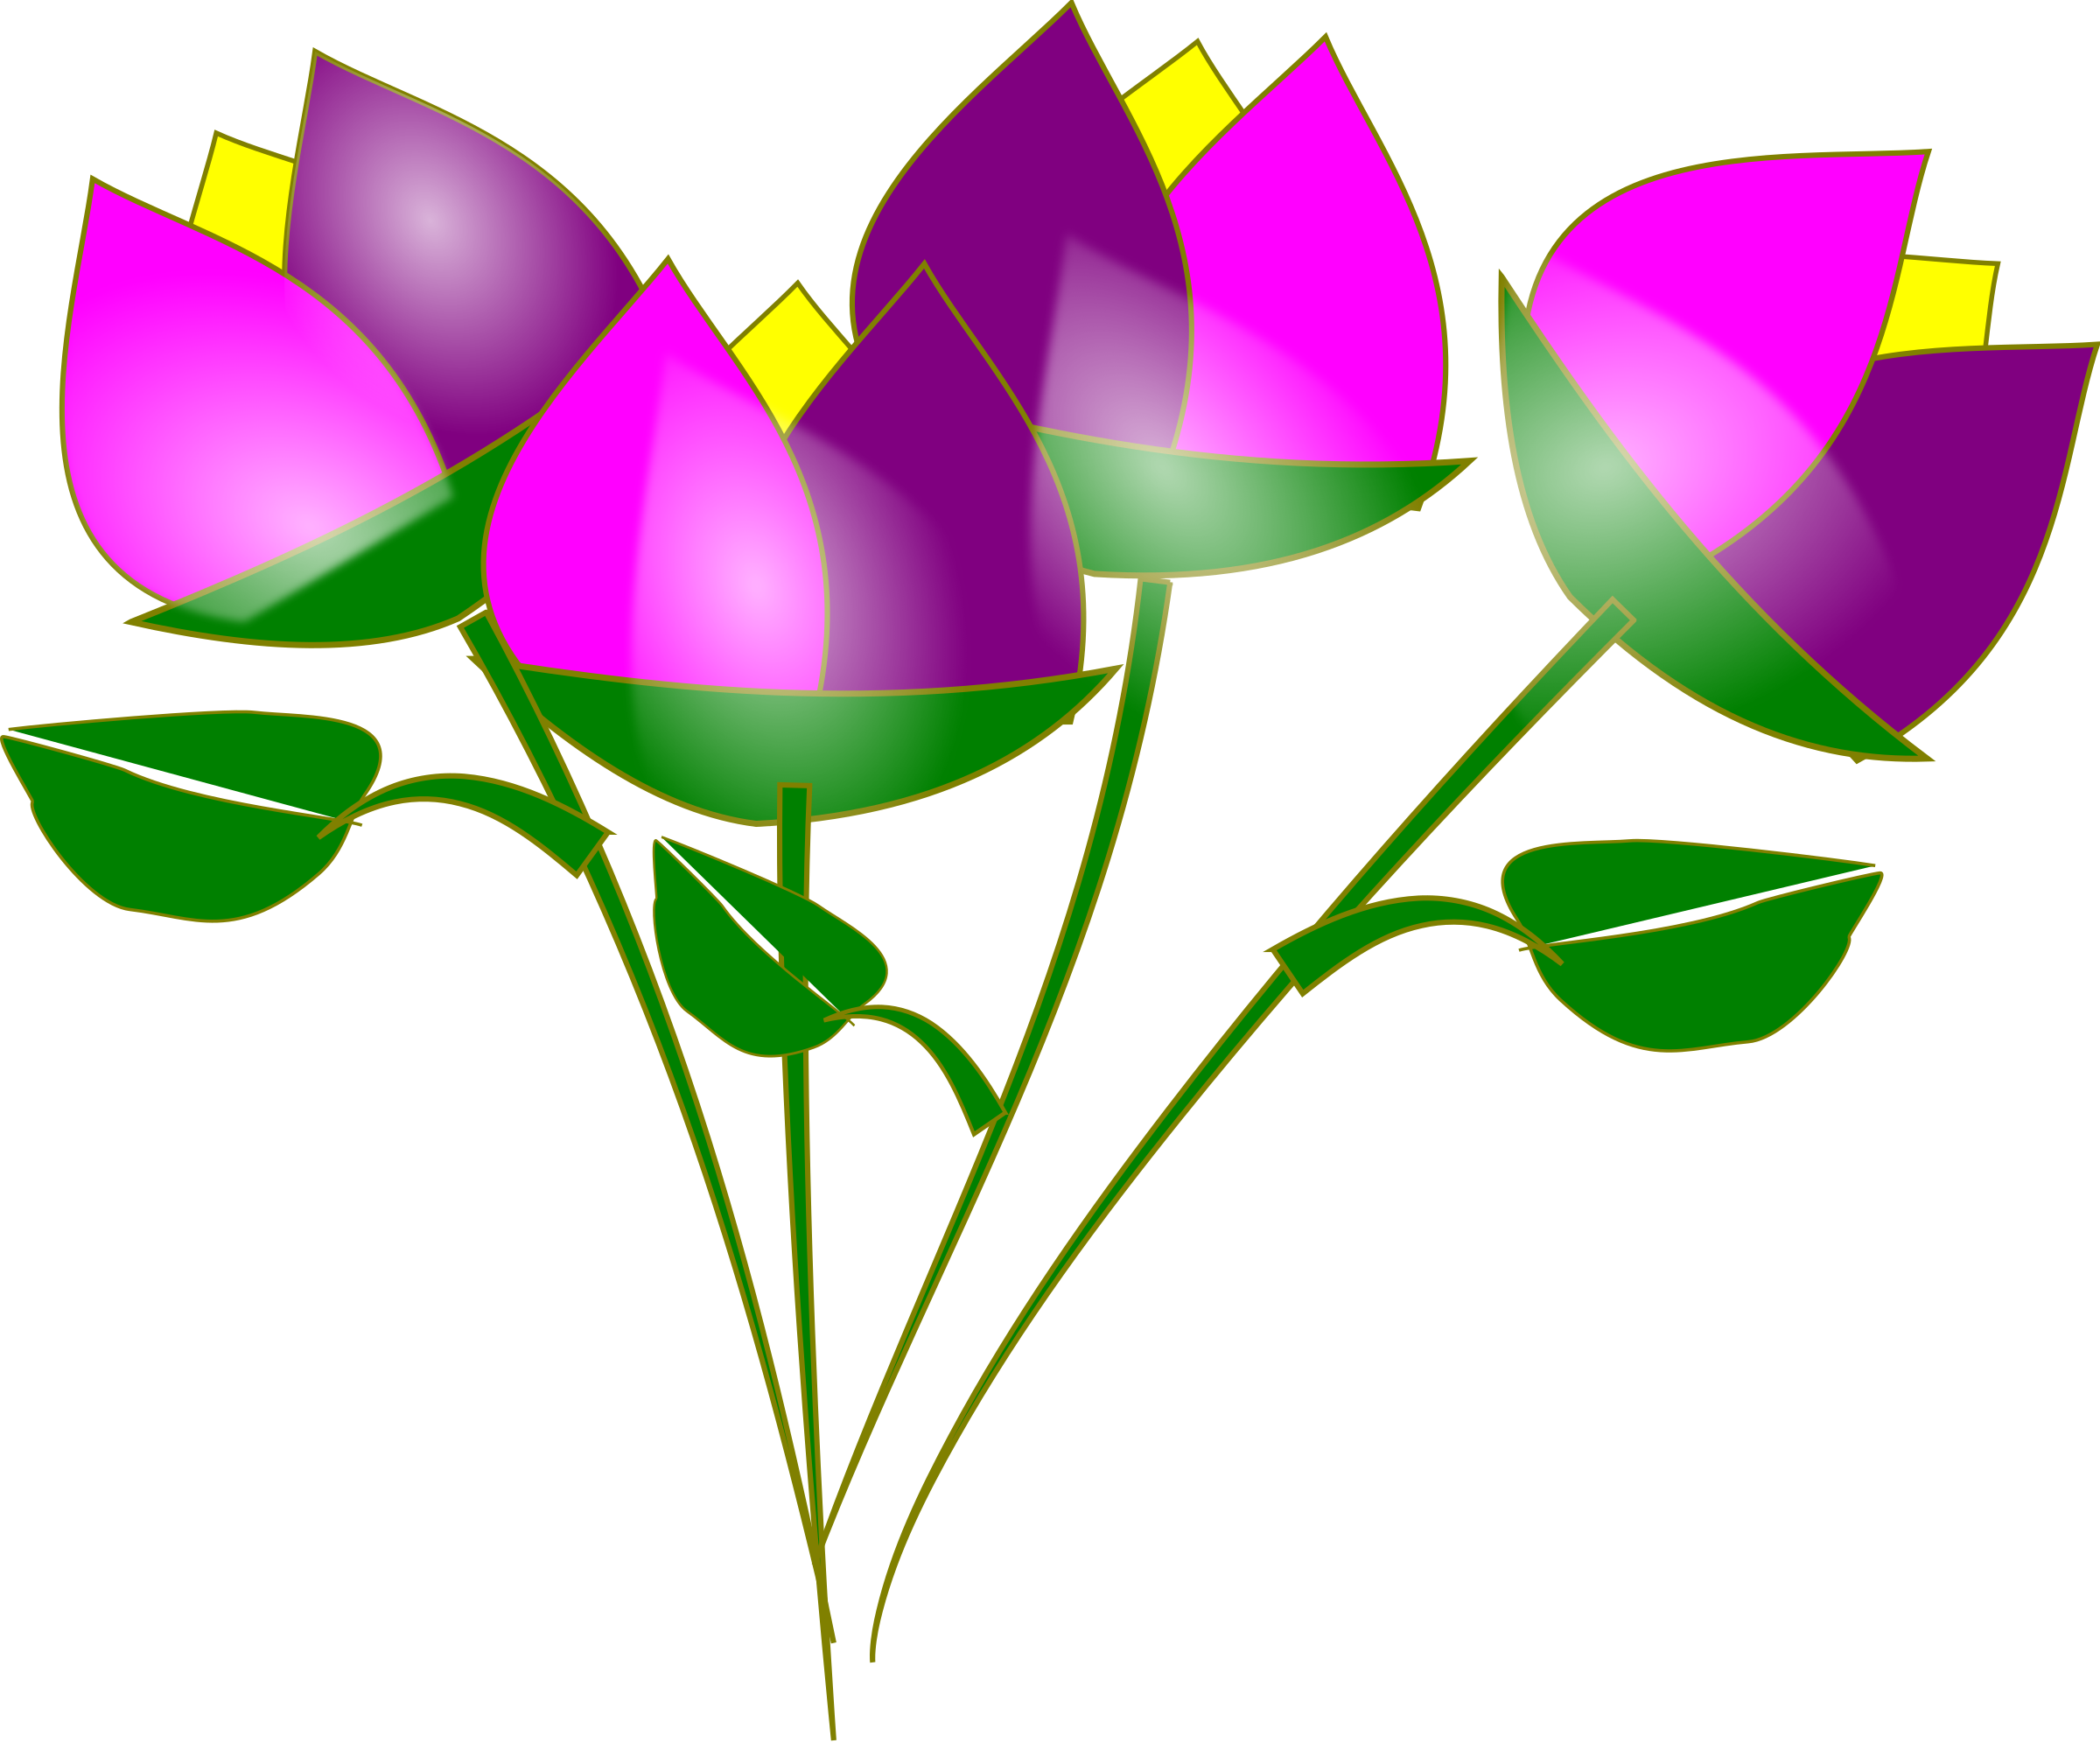 Flores lilas png. Flor lil s icons